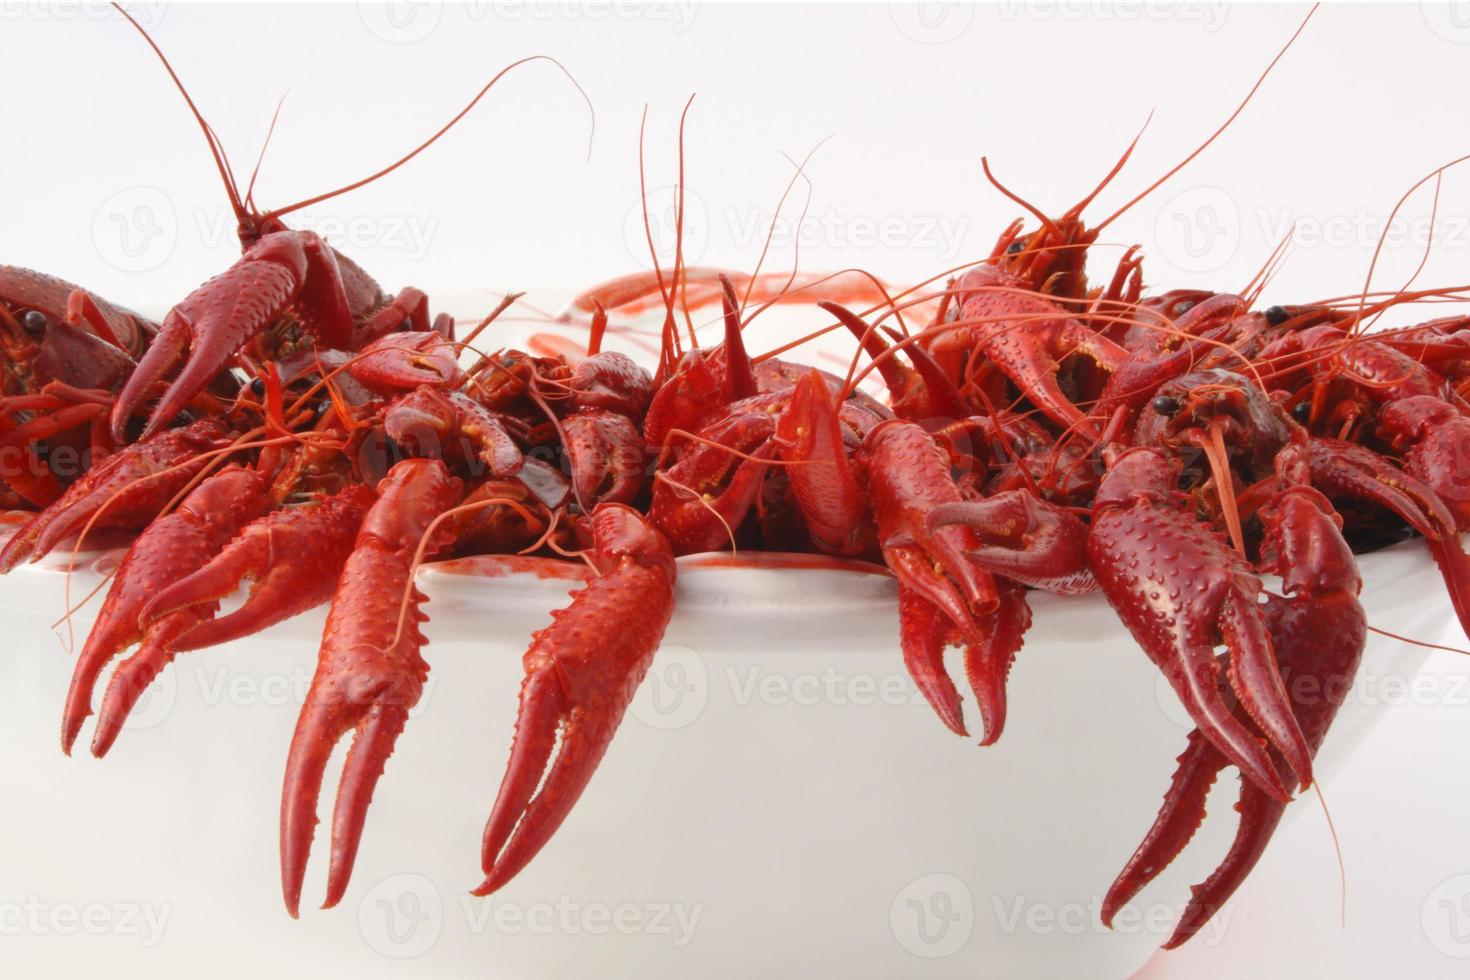 Crayfish cooked photo